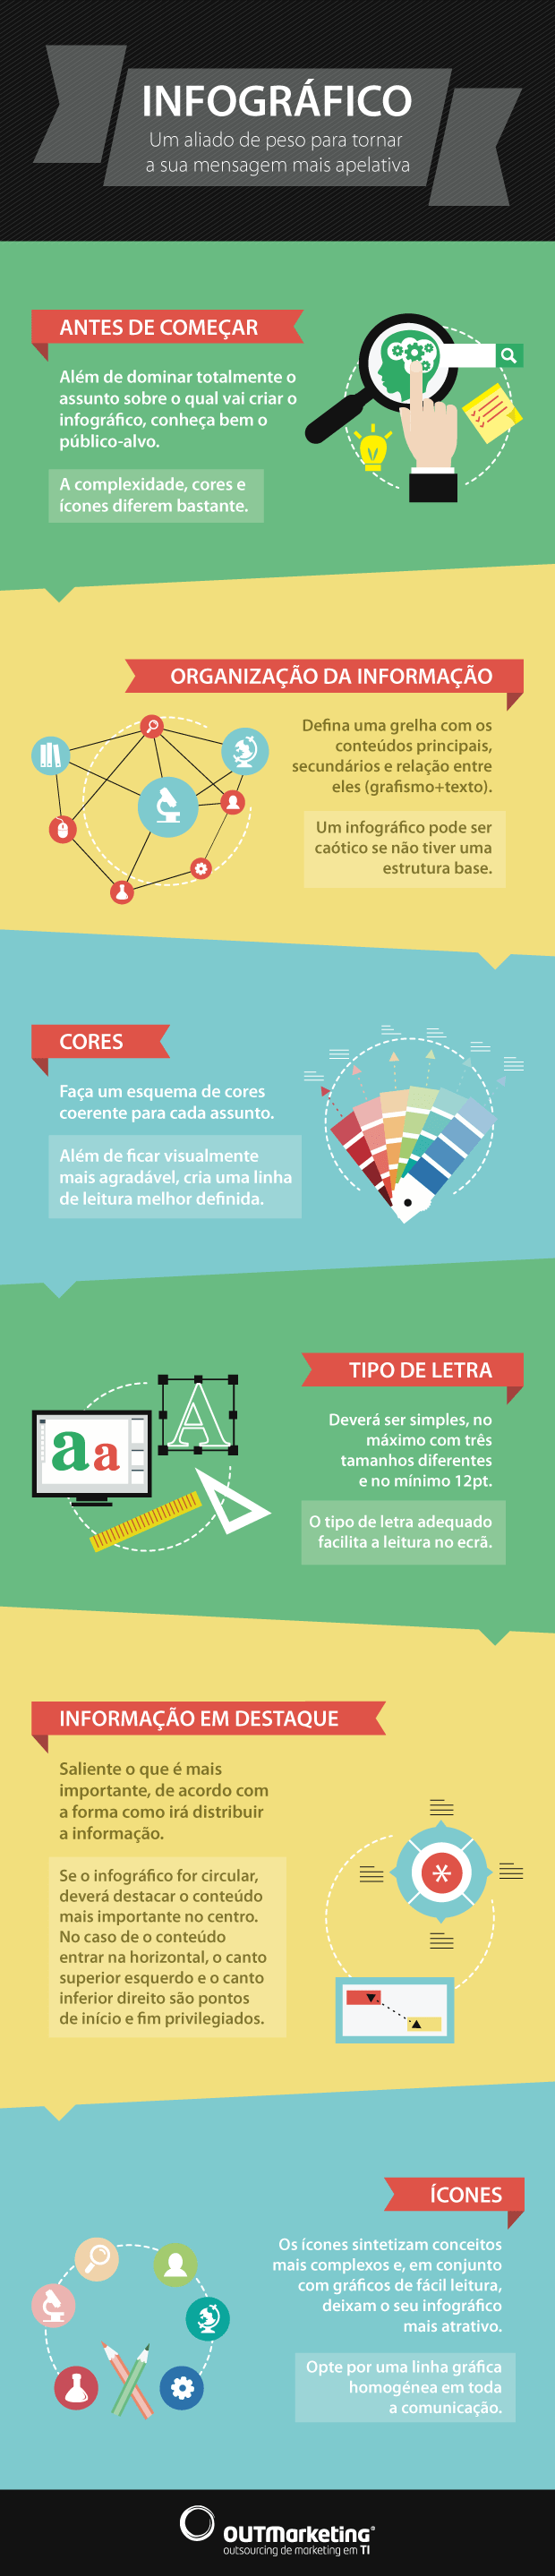 Infográfico - forte aliado do marketing